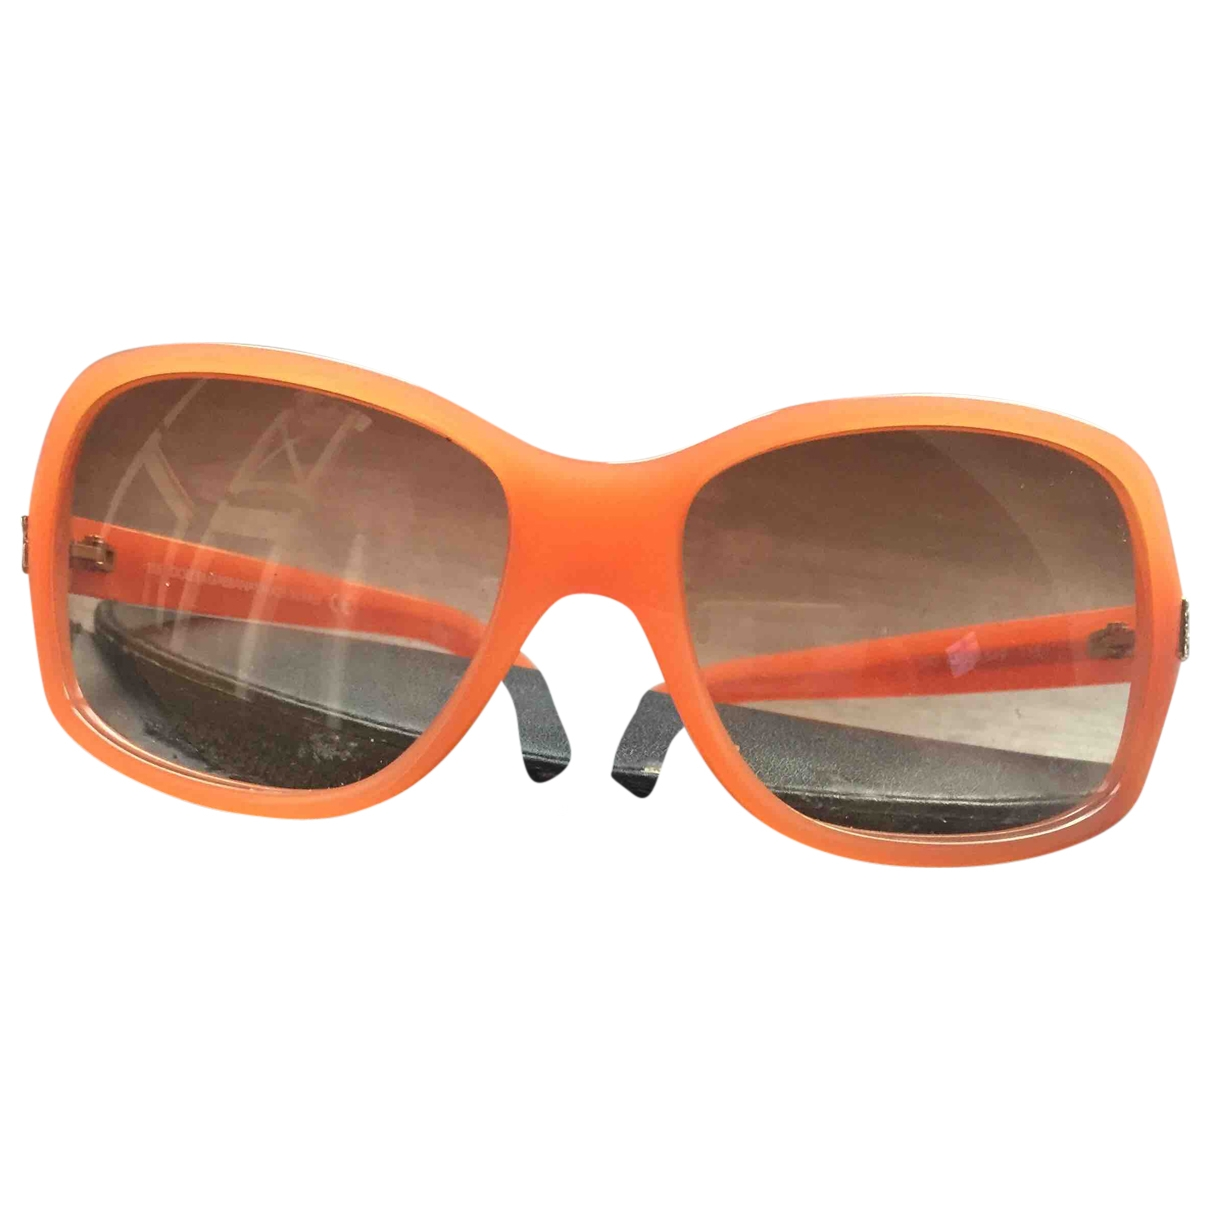 D&g \N Orange Sunglasses for Women \N